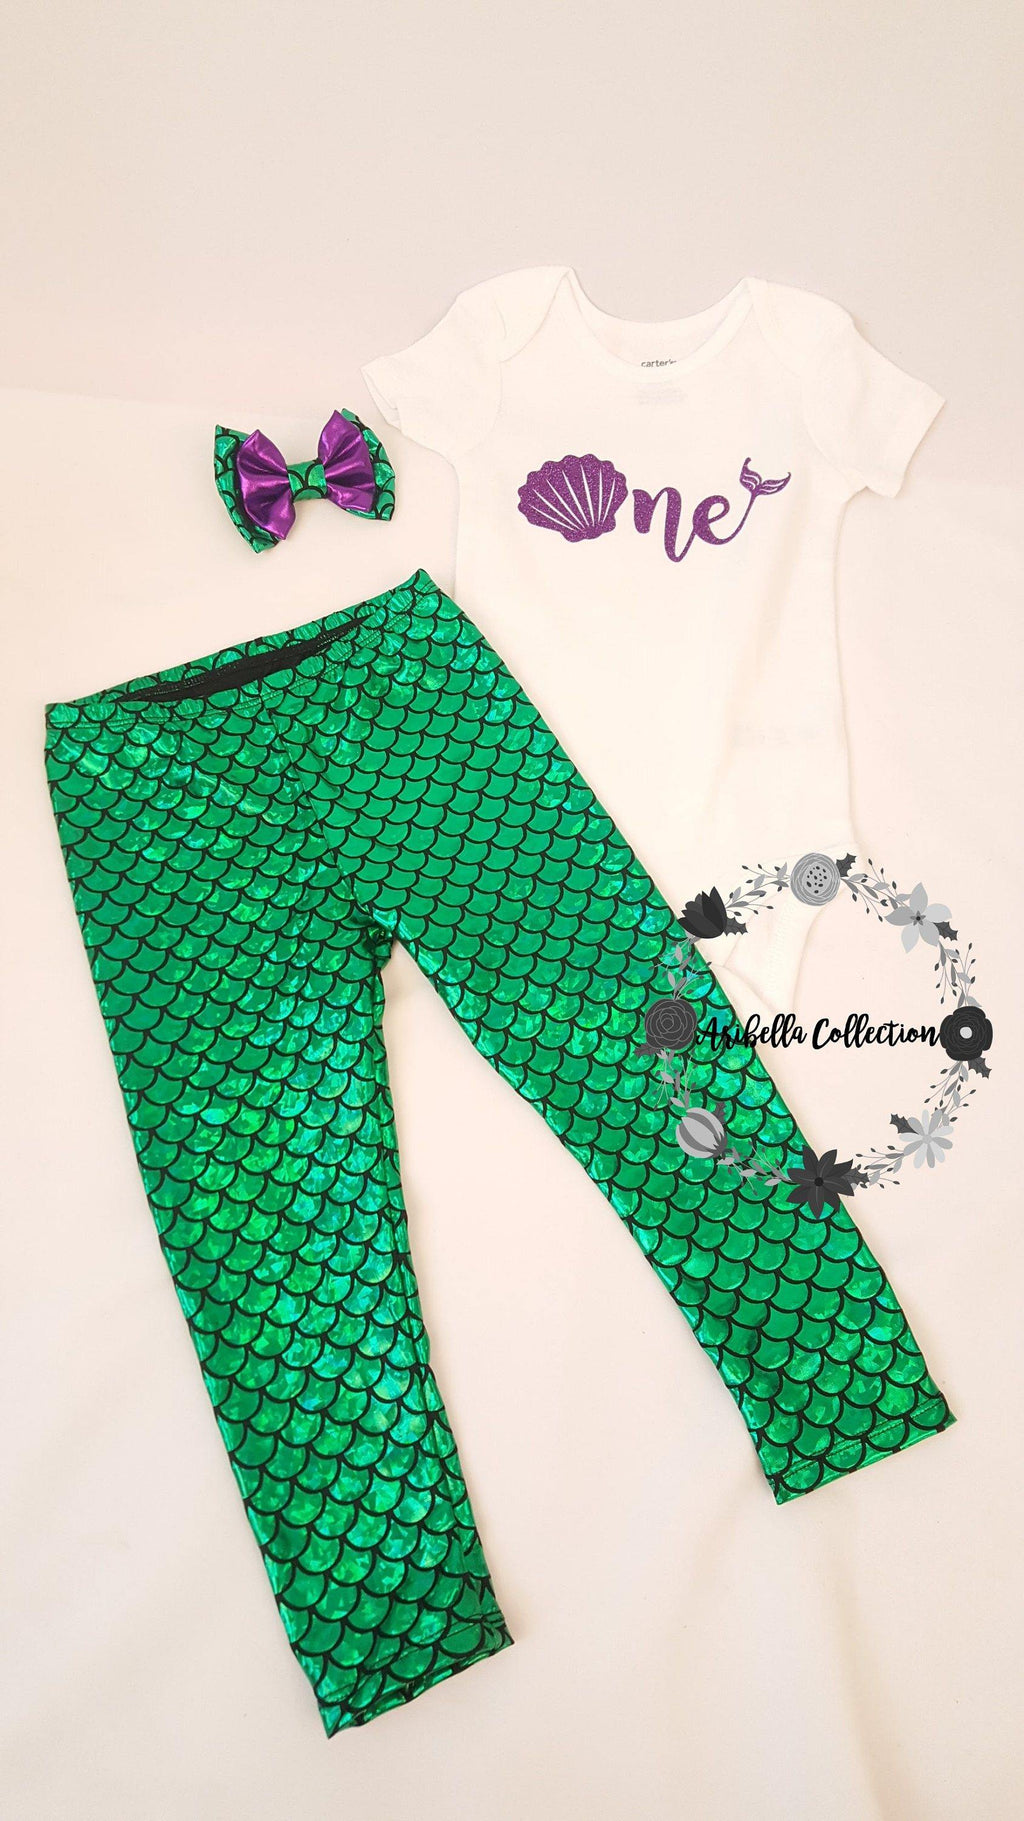 Mermaid Age One Thru Nine Outfit - Glitter Bodysuit or T-shirt, Green Legging, Hair Clip Bow - Aribella Collection